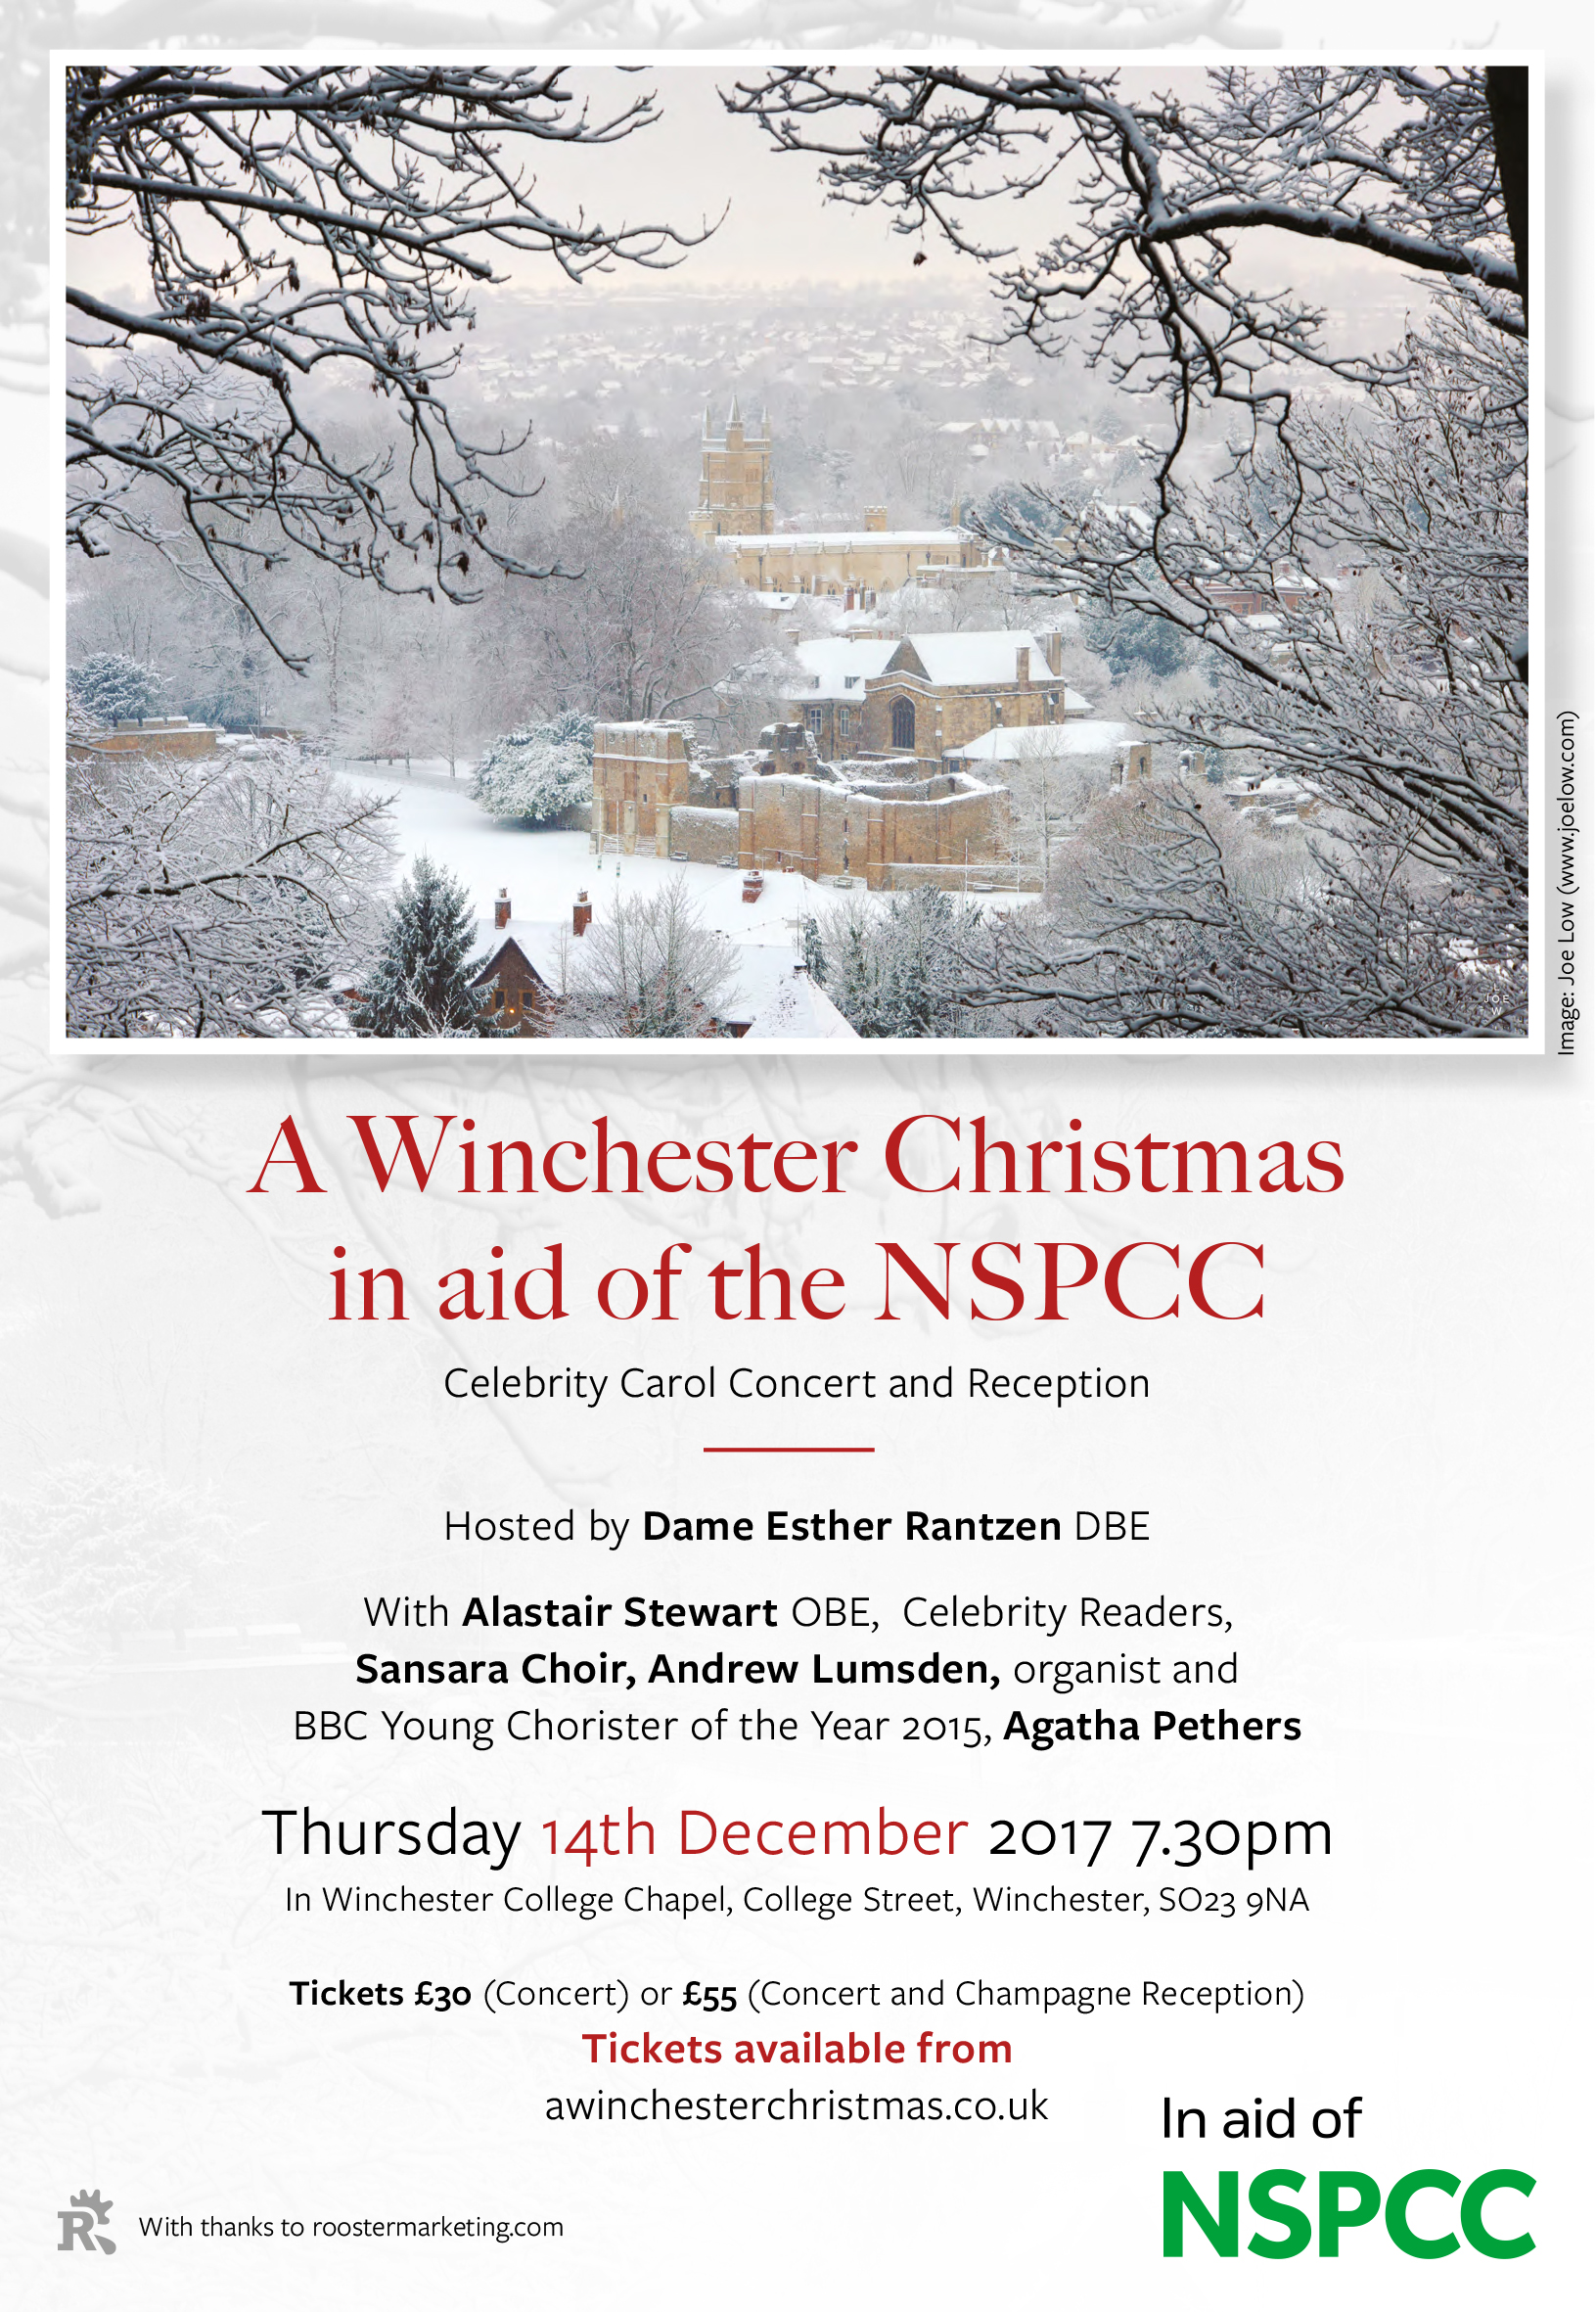 A5 Nspcc flyer design - web.jpg